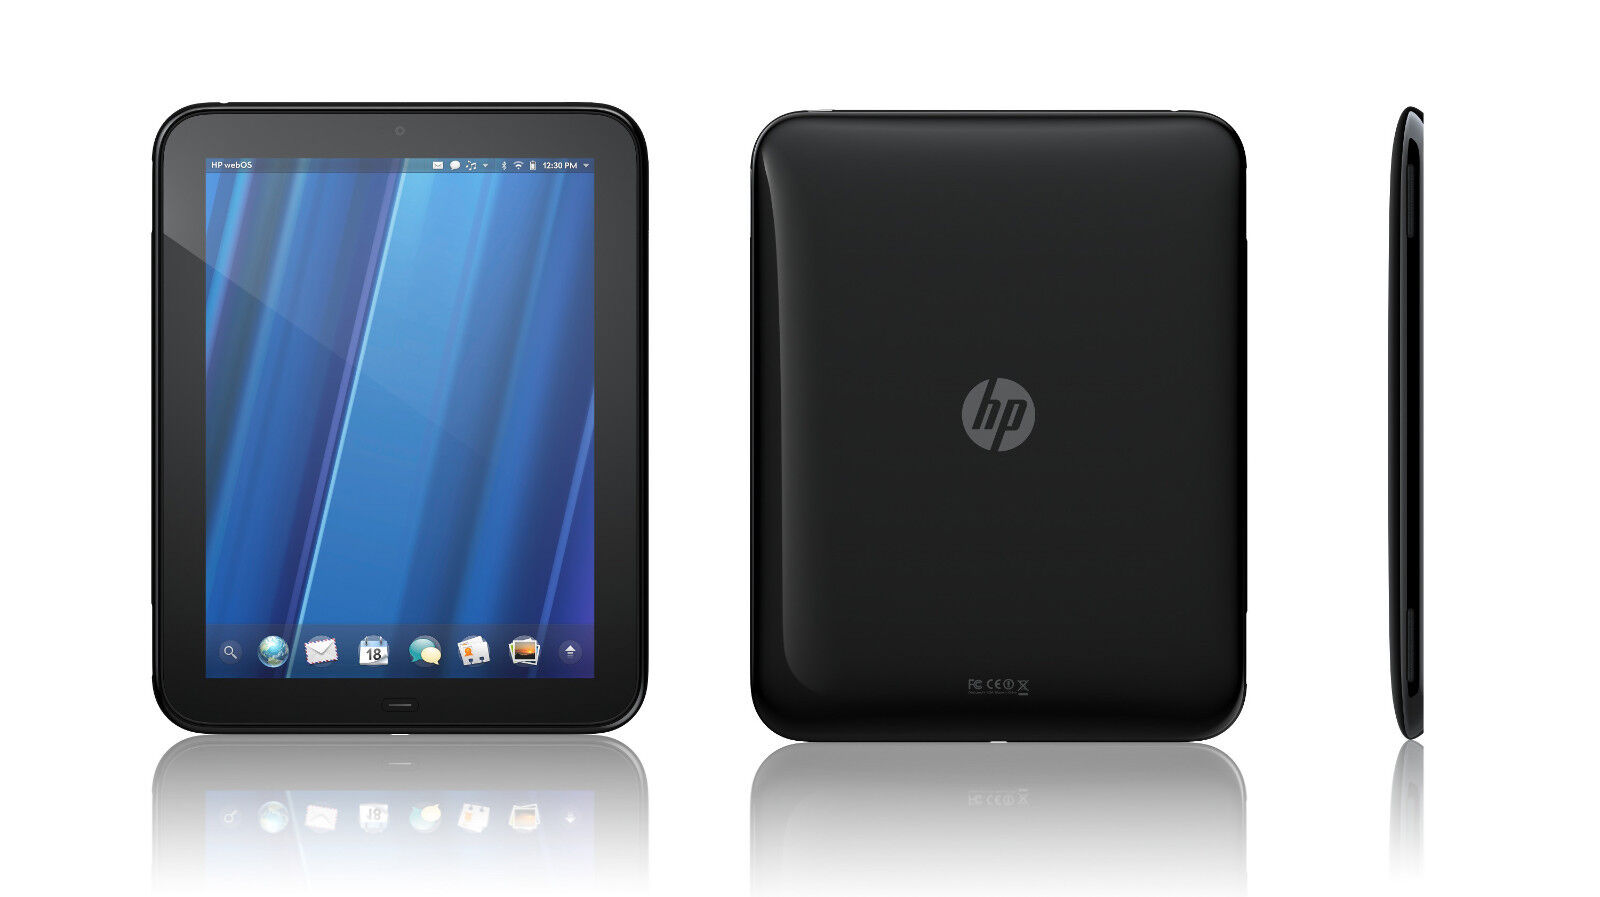 HP Touchpad 16G, WiFi, 9.7 inch tablet computer